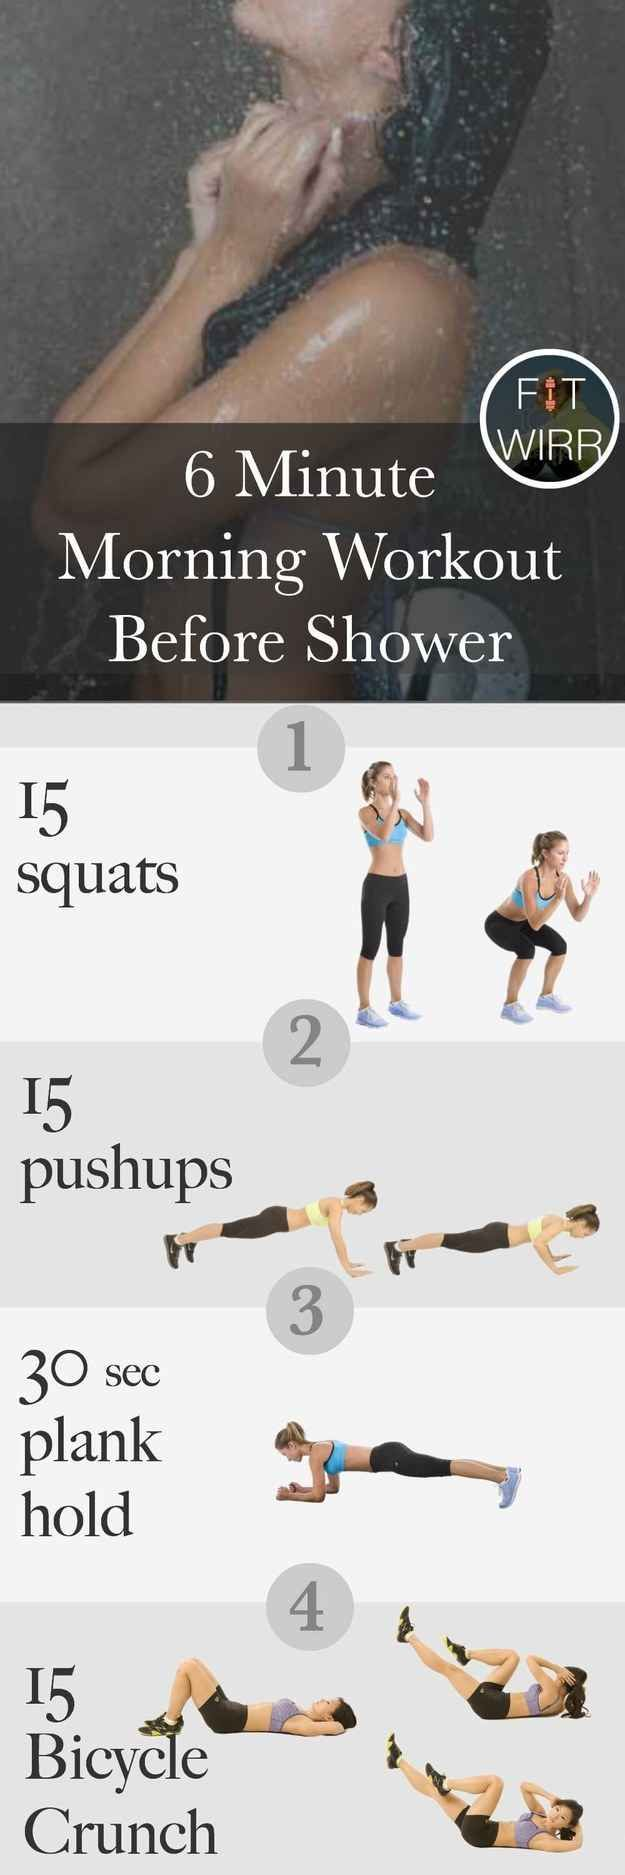 Morning Workout before the Shower.  For when you don't even have 10 minutes to spare: